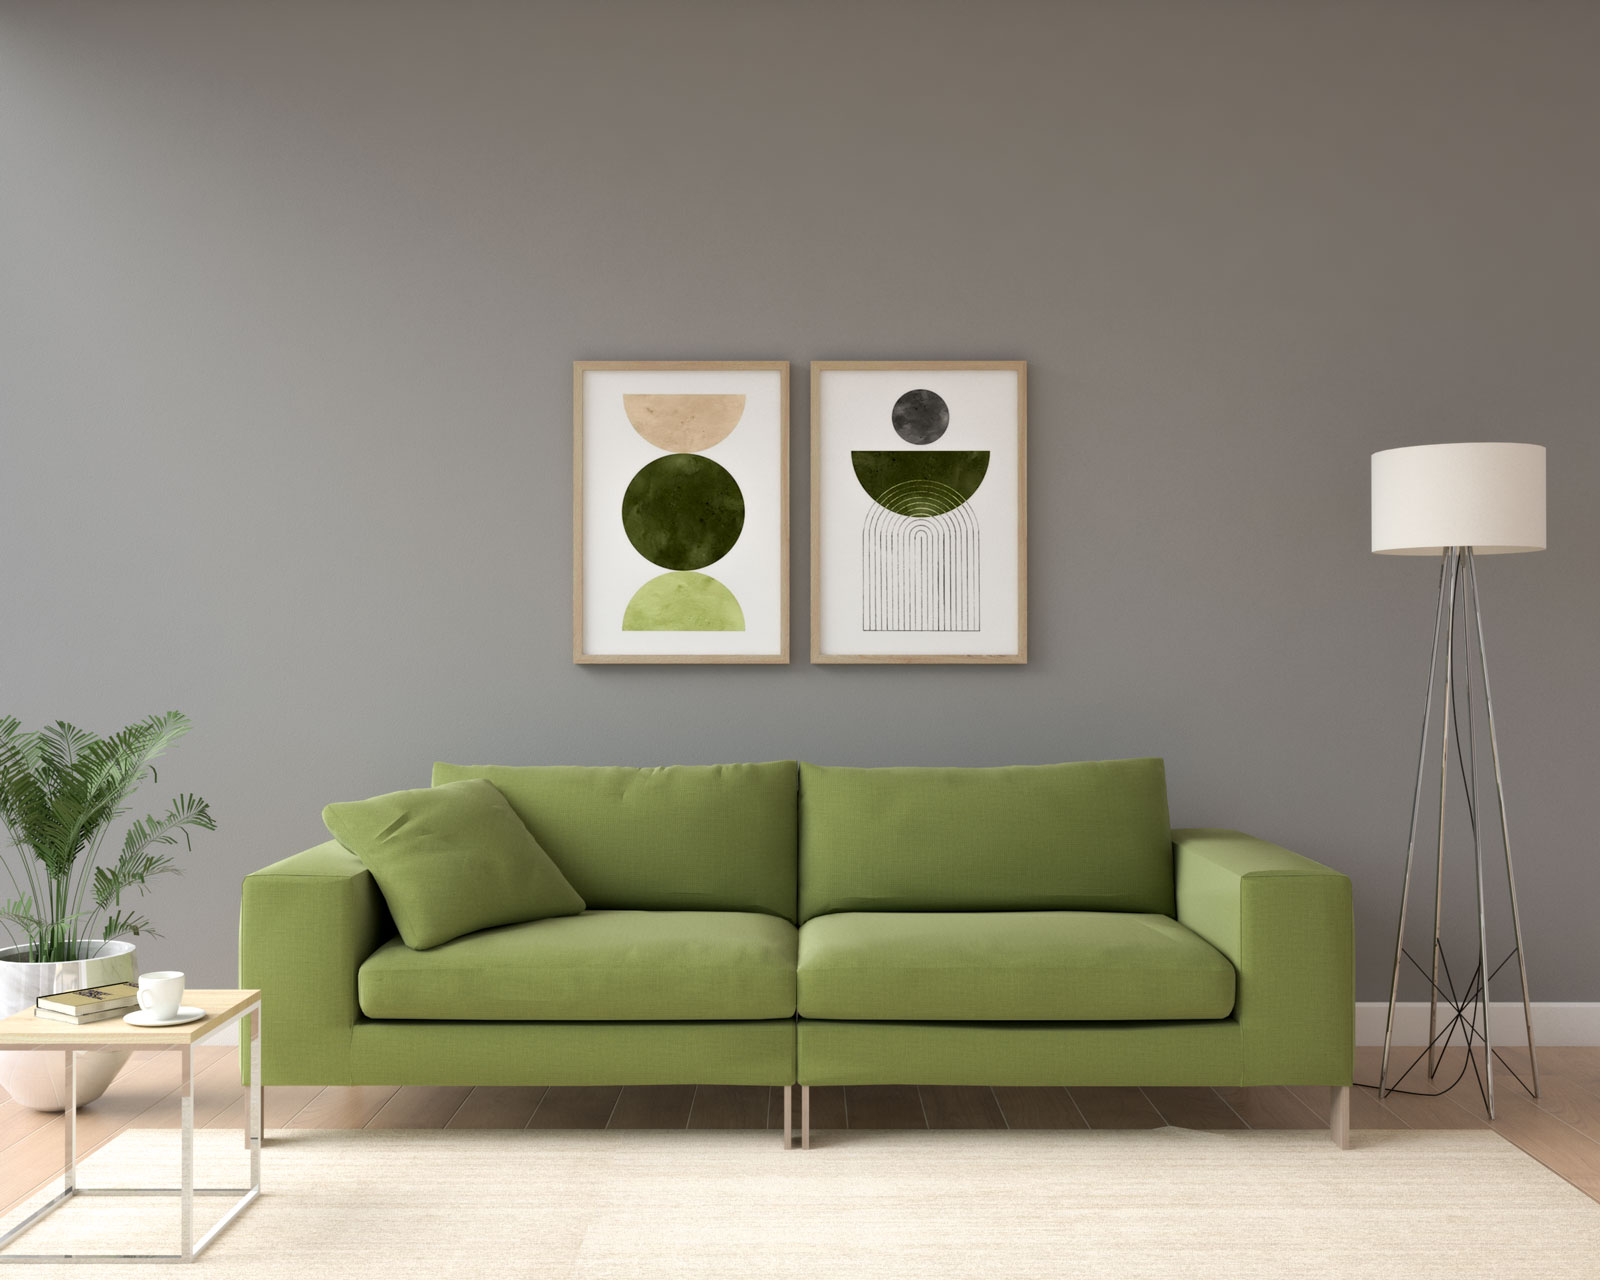 Living room with gray walls and olive green couch